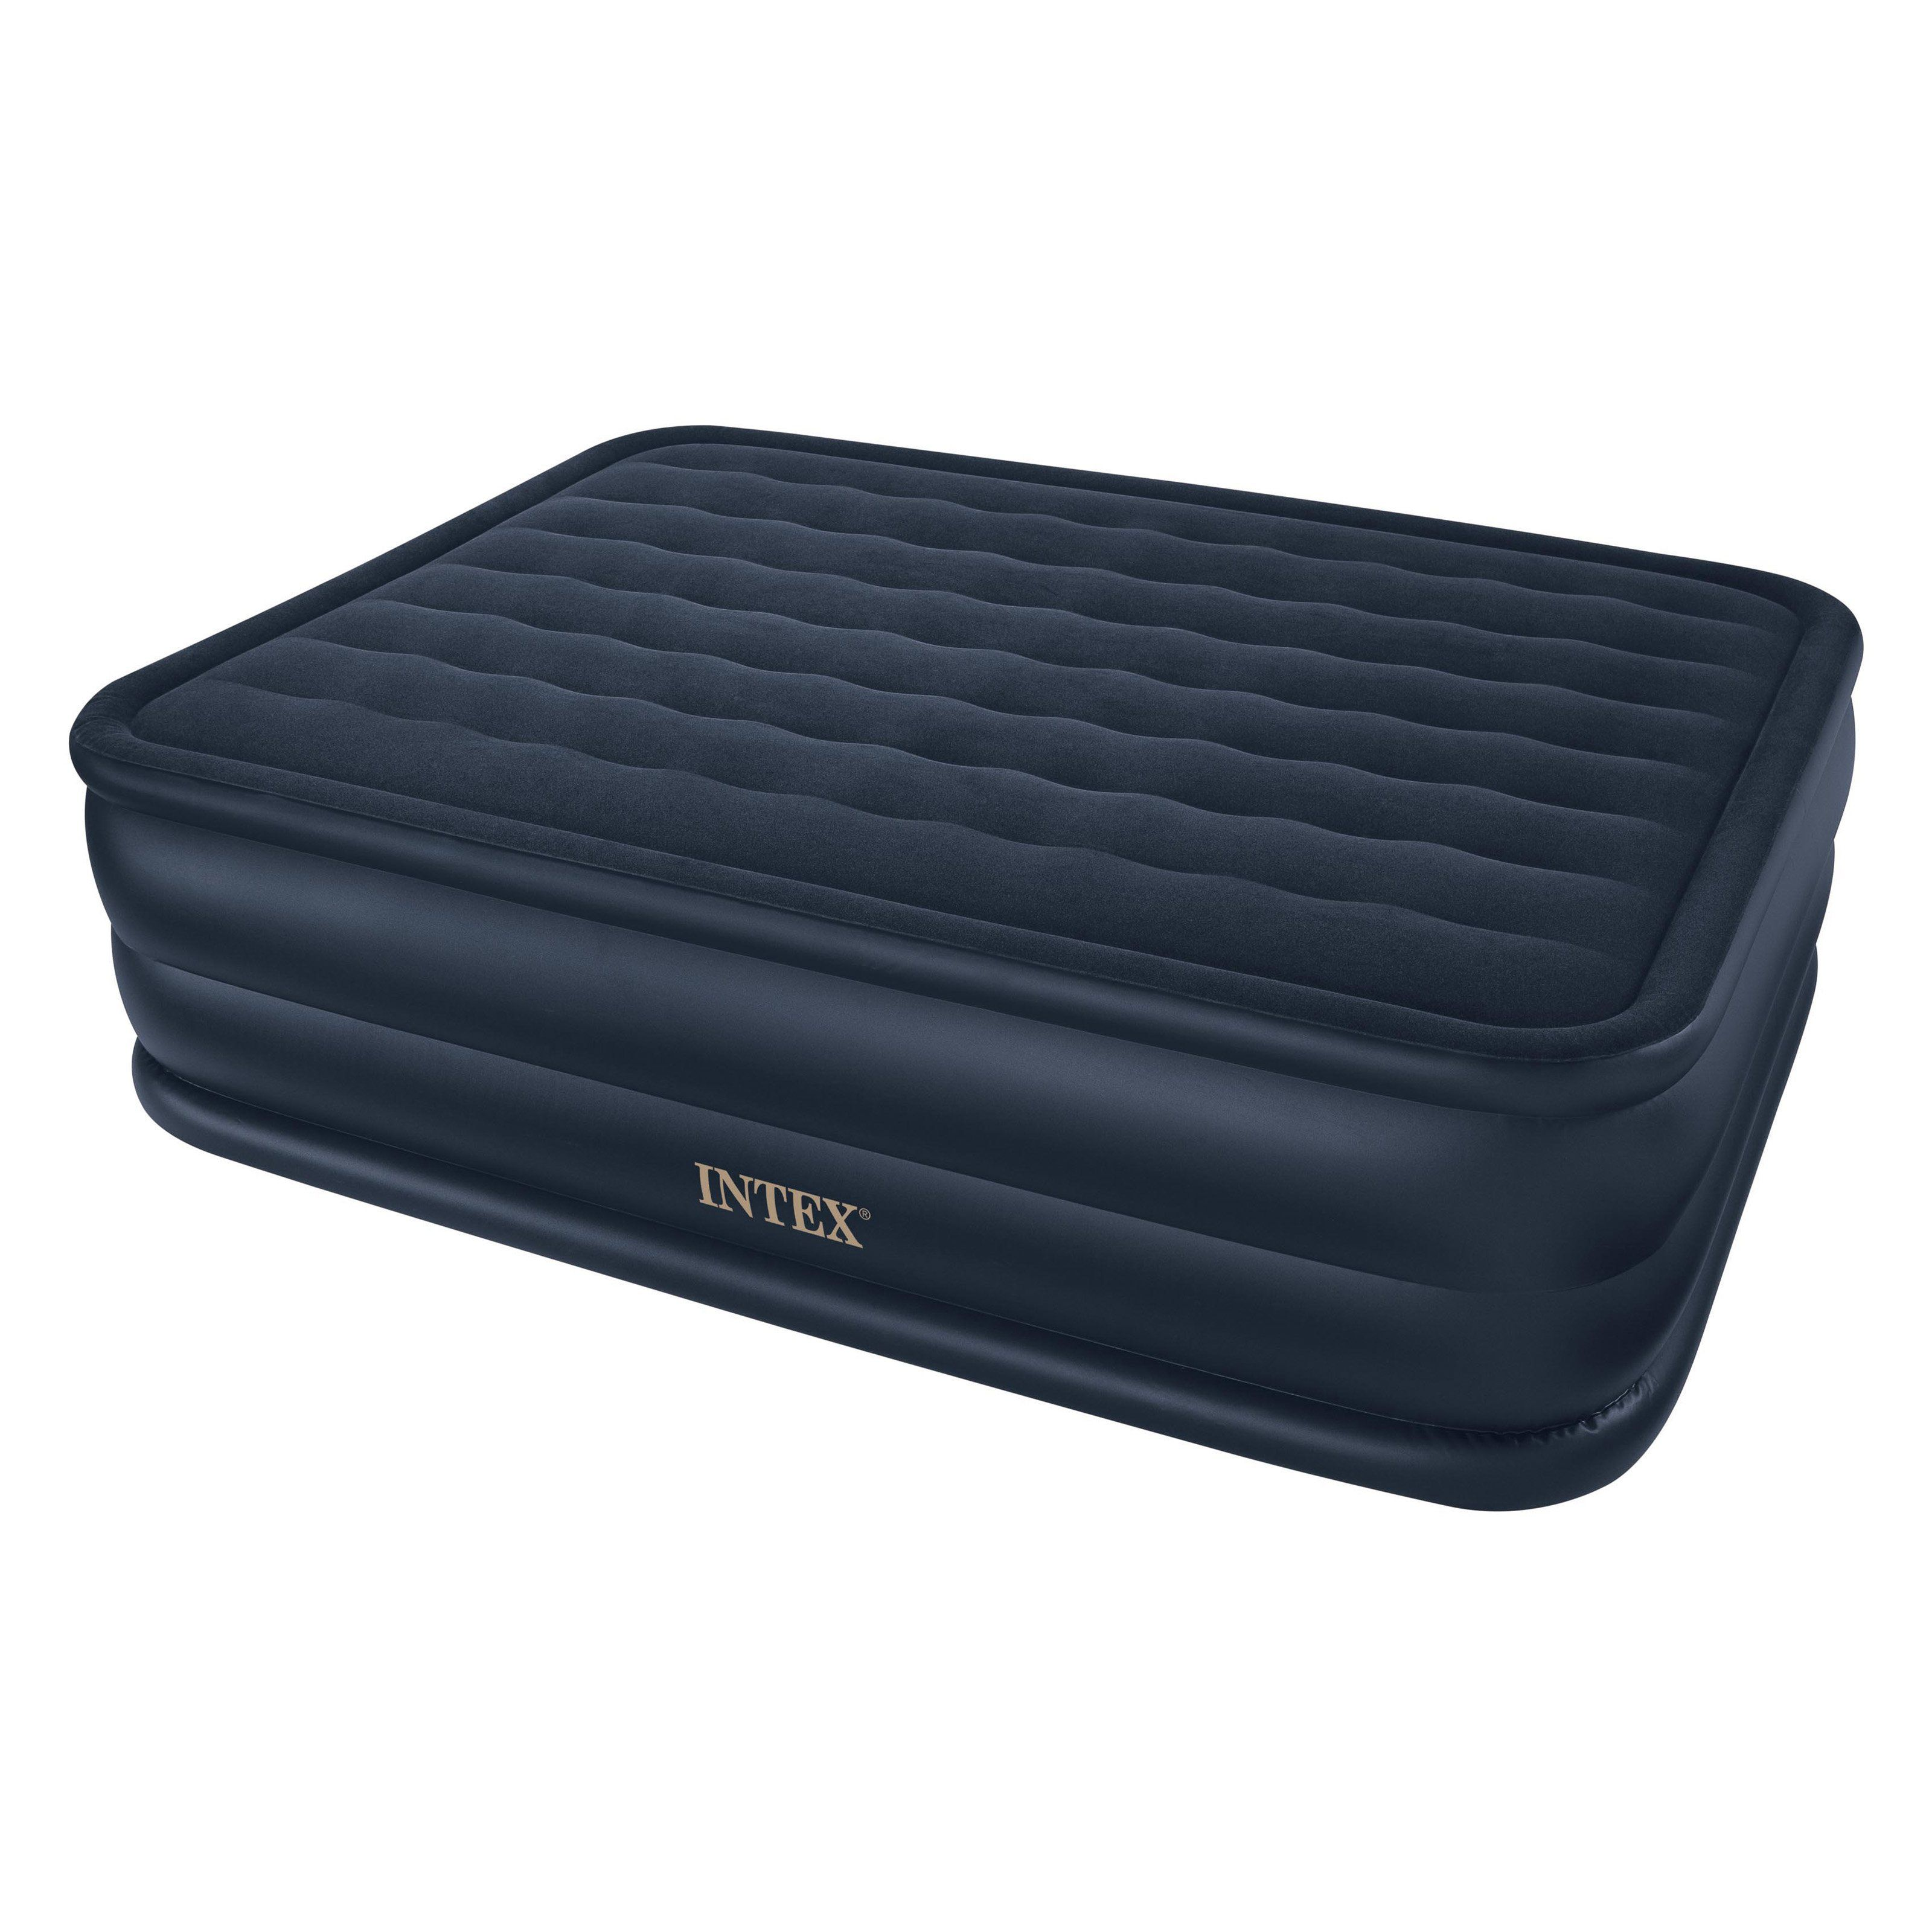 ojsnrrz raised luxury intex deluxe blogbeen pack to pillow twin make mattress use rest air mattresses how pumps of